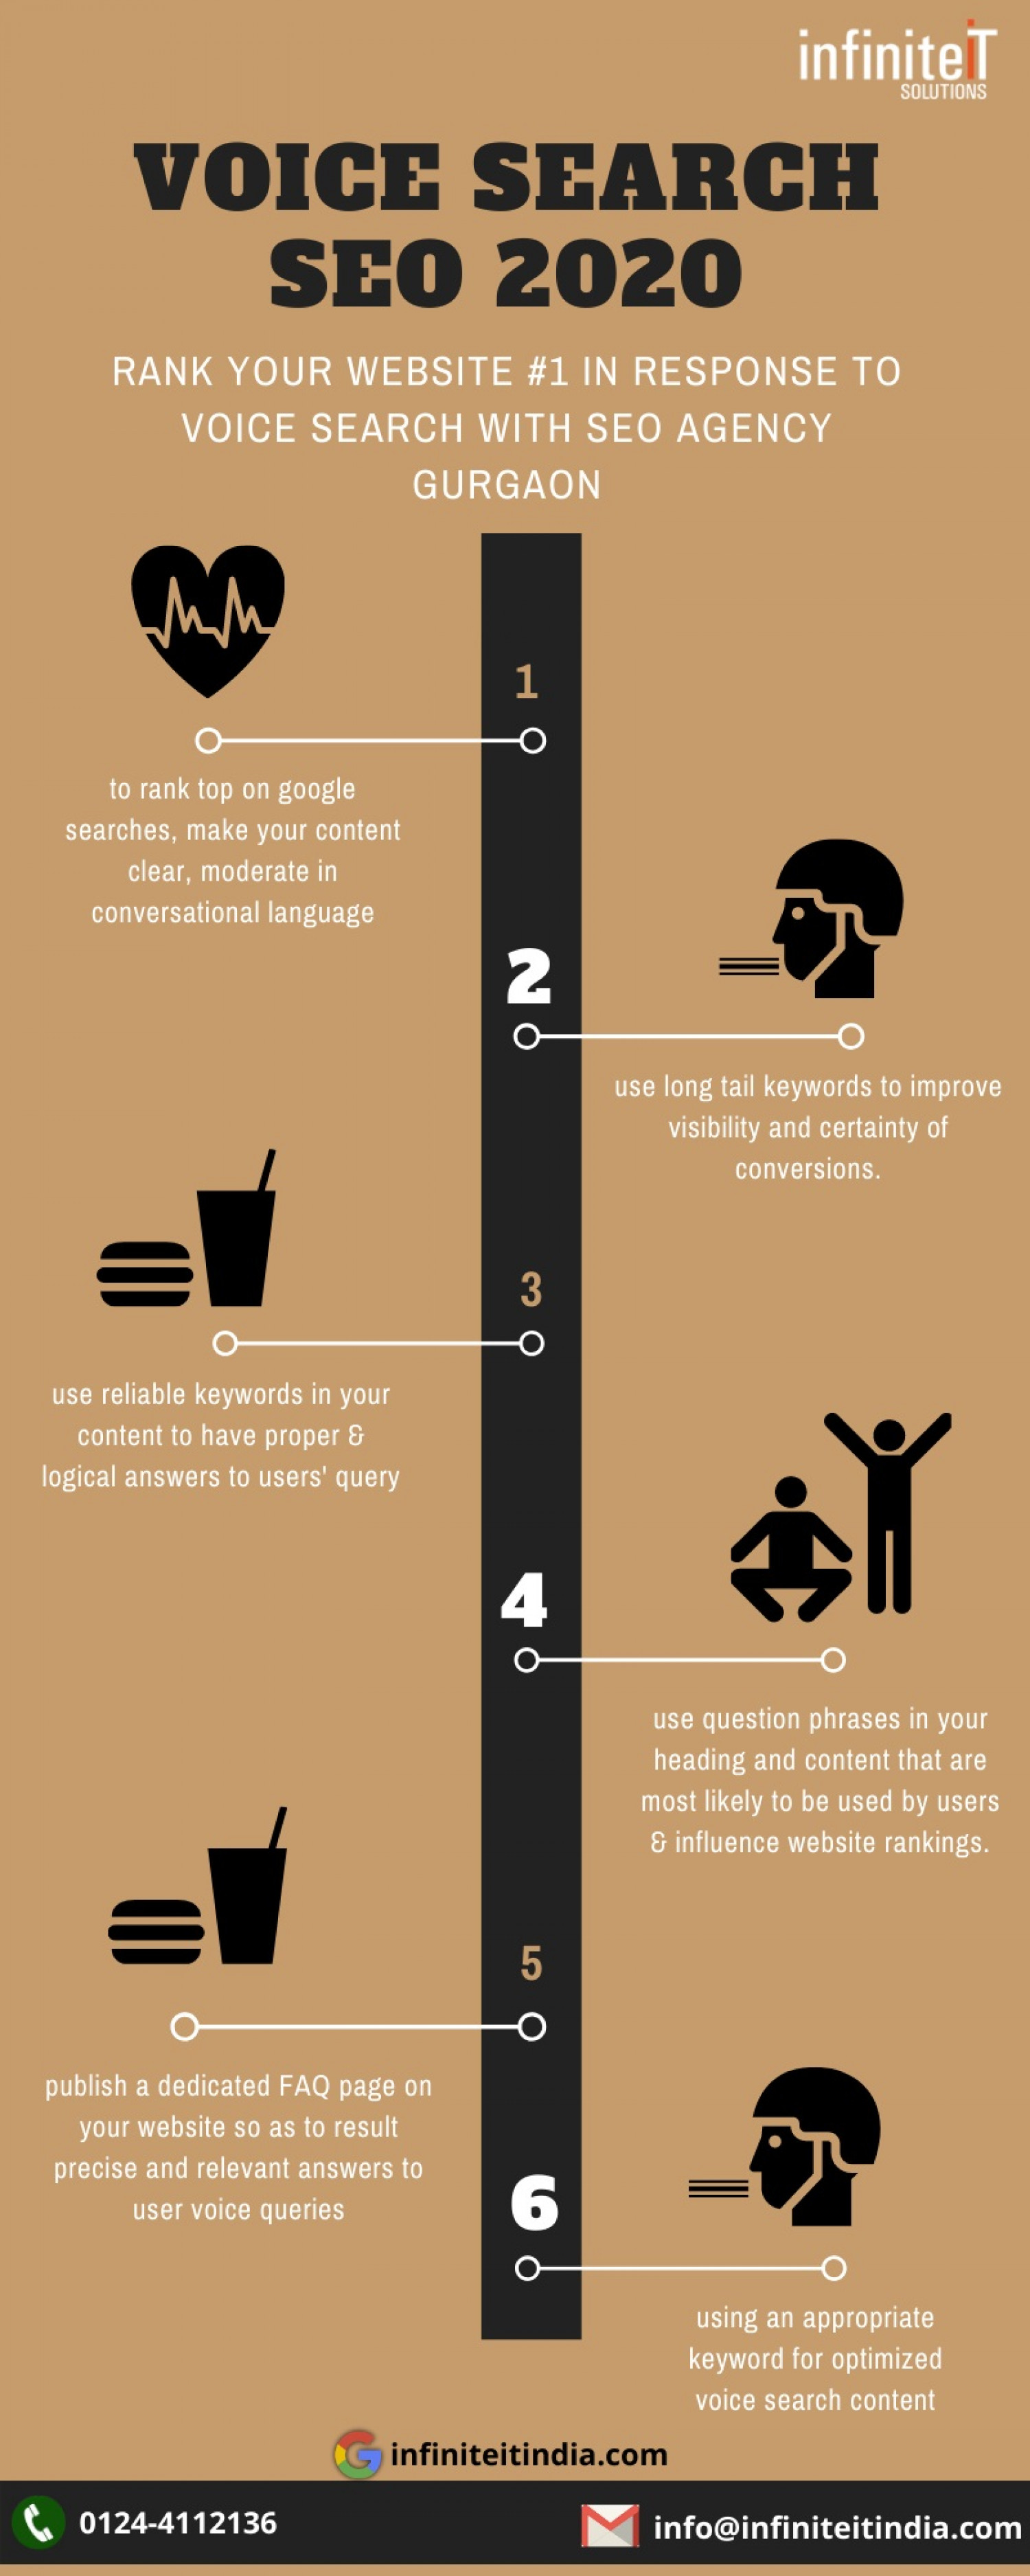 Voice search seo 2020 strategy by SEO Agency Gurgaon Infographic